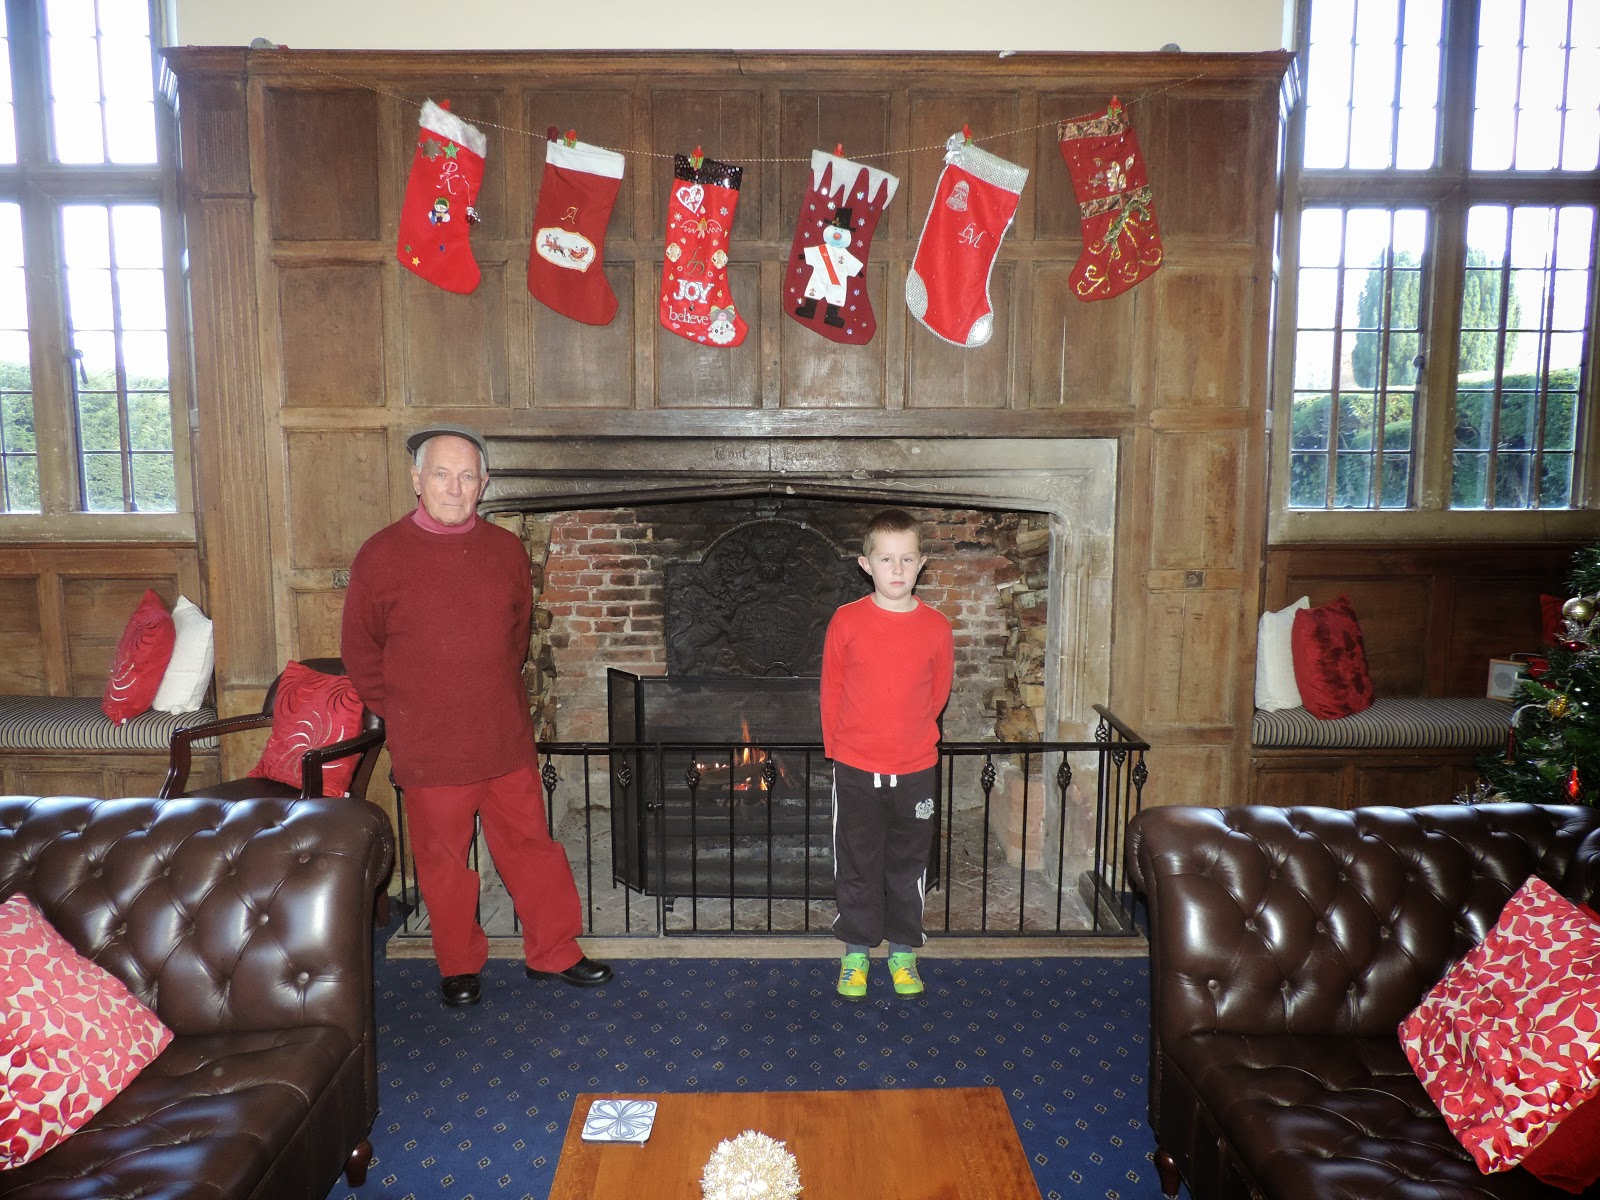 family xmas fireplace tudor building grove place nursling southampton